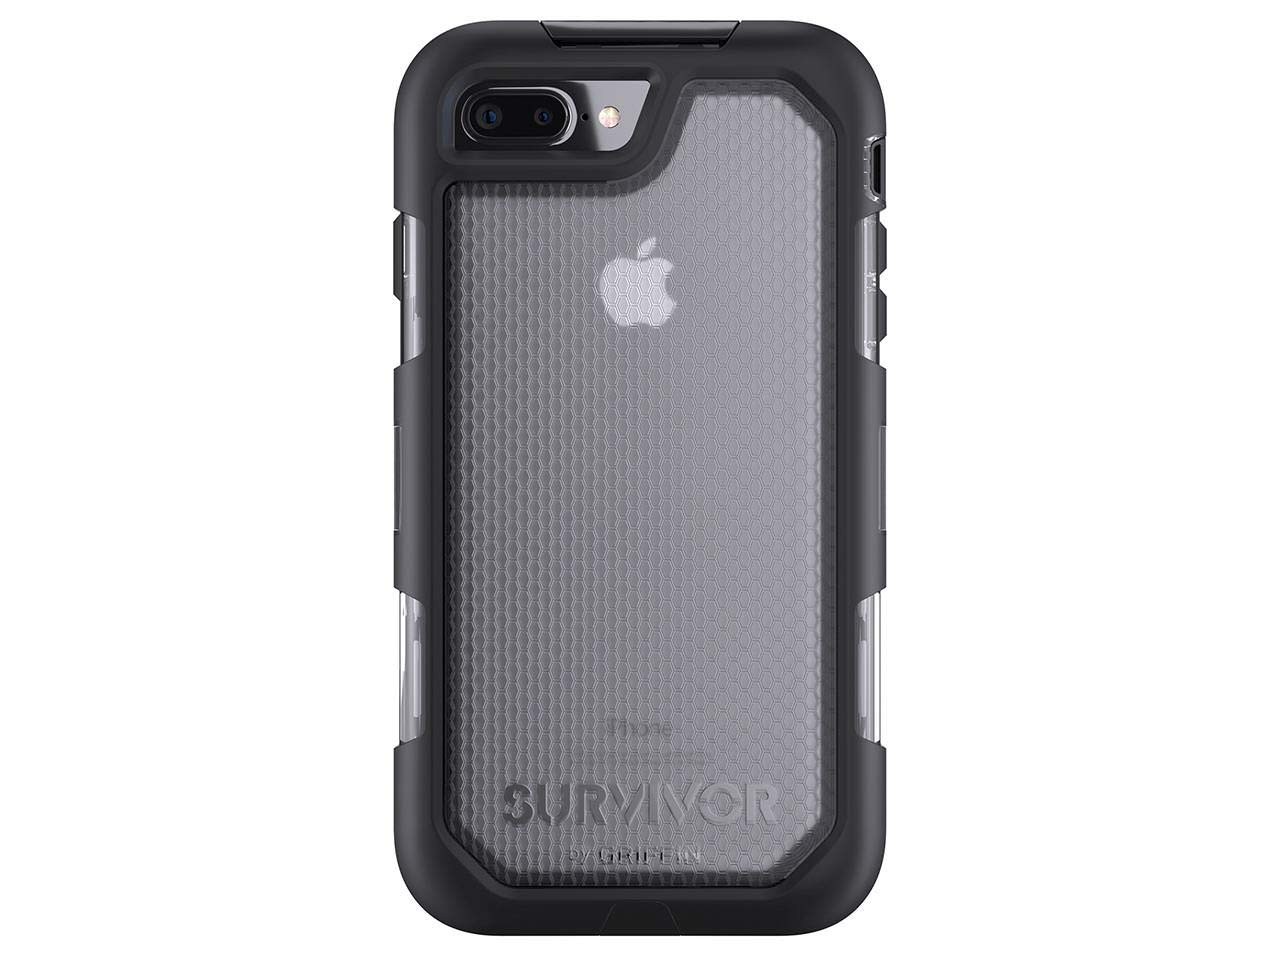 separation shoes 32c92 396a5 Griffin Survivor Summit for iPhone 7 Plus, Black Clear - Maximum Drop  Protection and rain-Proof case for iPhone 7 Plus